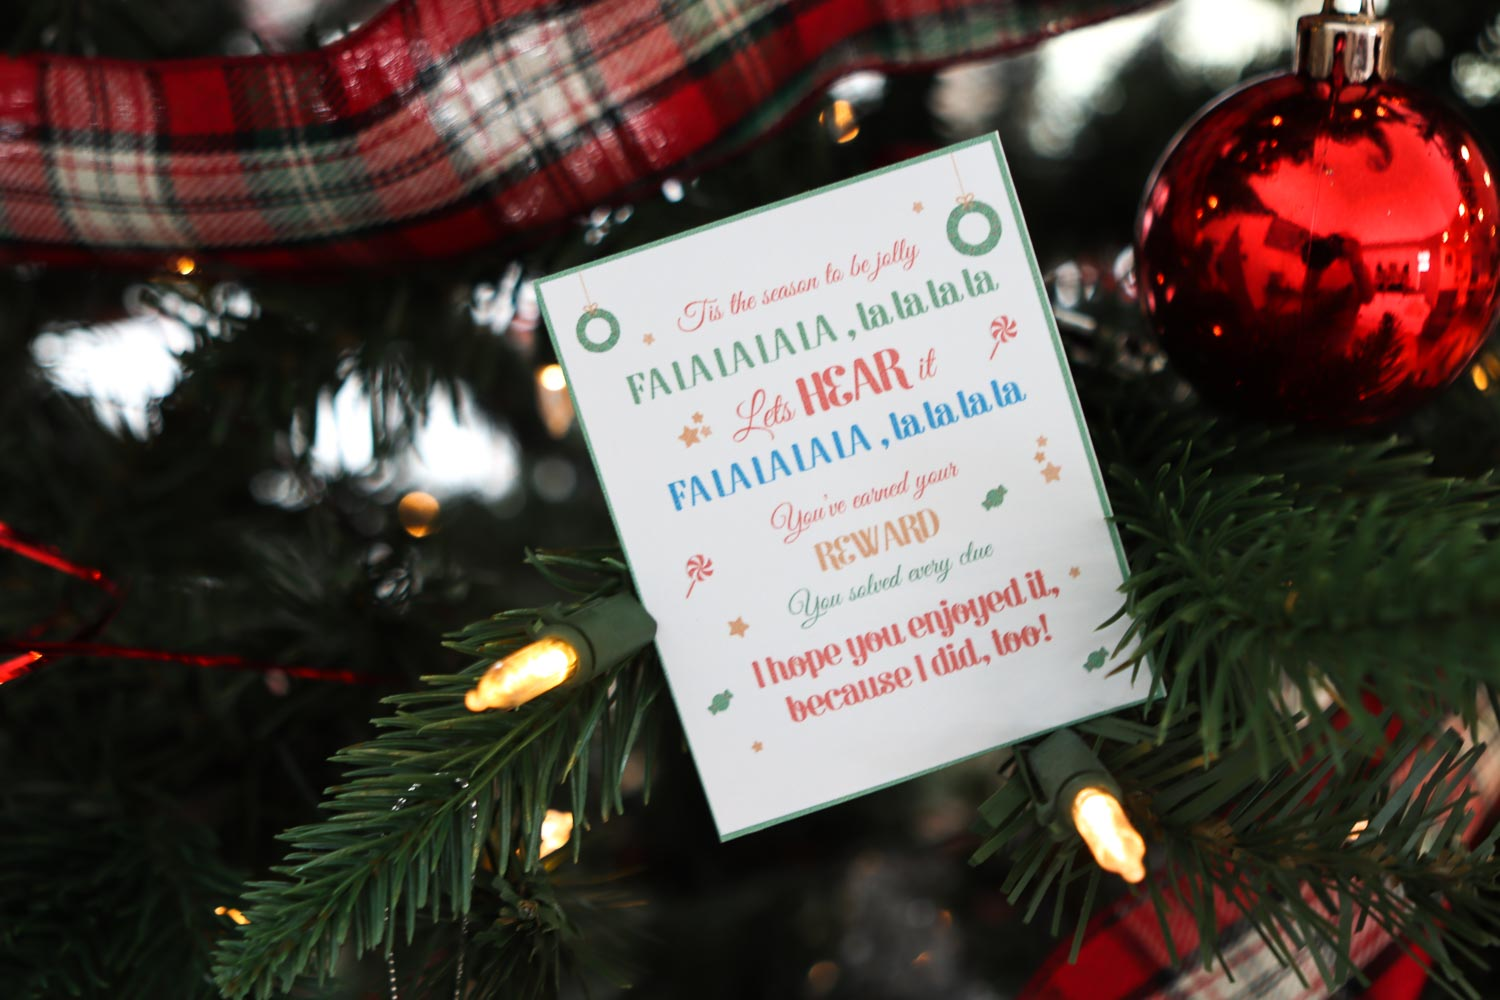 A clue for the treasure hunt in a Christmas tree.